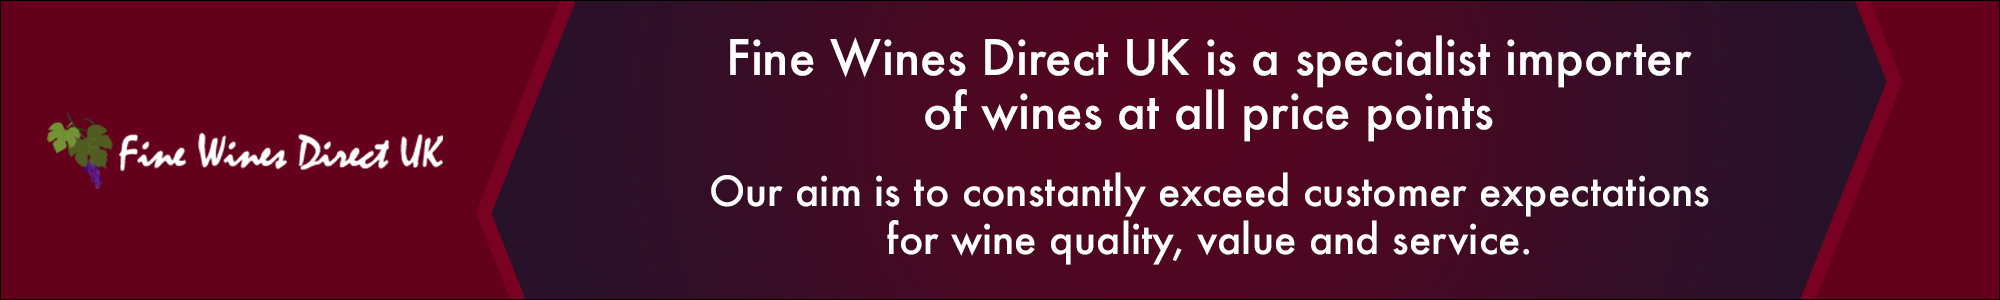 Fine Wines Direct UK*